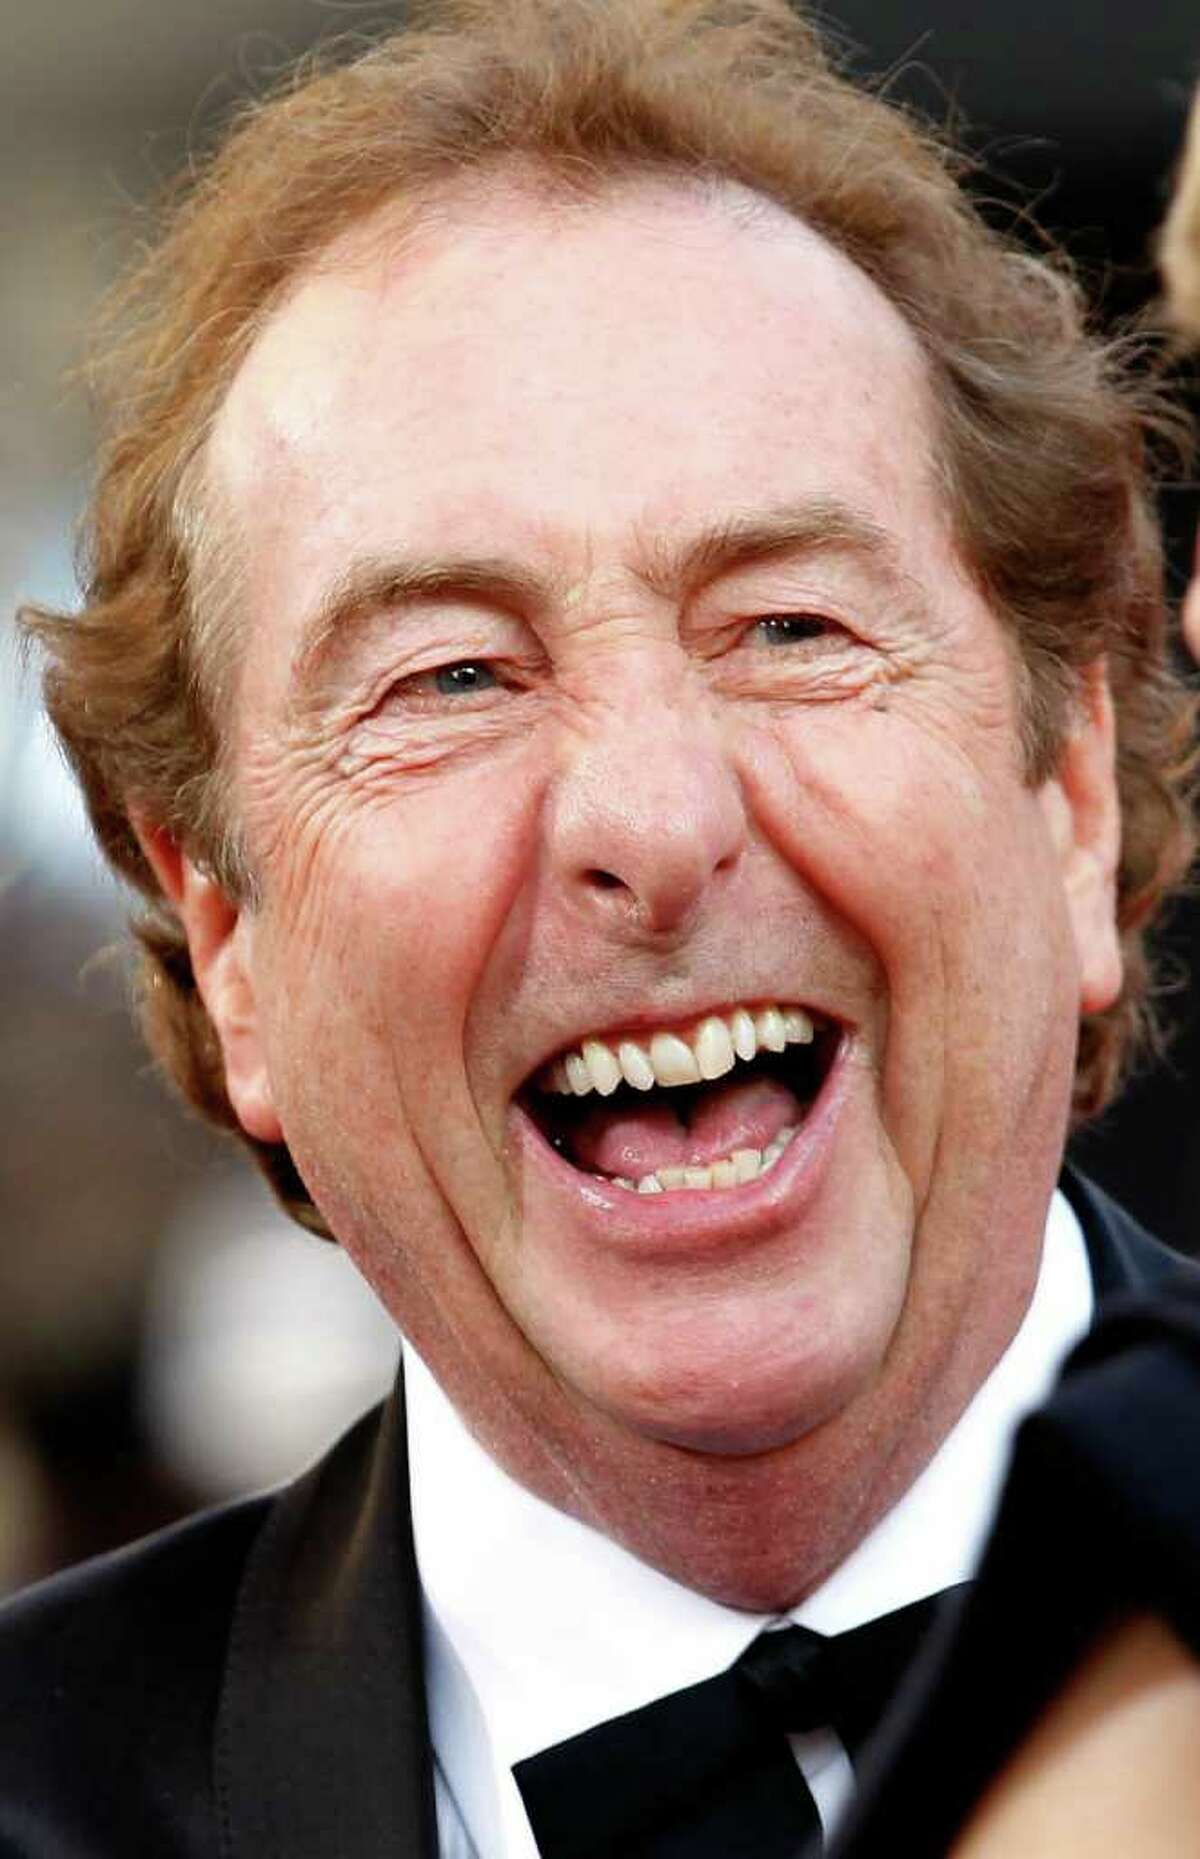 CULVER CITY, CA - JUNE 10: Actor Eric Idle attends the 38th AFI Life Achievement Award honoring Mike Nichols held at Sony Pictures Studios on June 10, 2010 in Culver City, California. The AFI Life Achievement Award tribute to Mike Nichols will premiere on TV Land on Saturday, June 25 at 9PM ET/PST. (Photo by Christopher Polk/Getty Images for AFI)